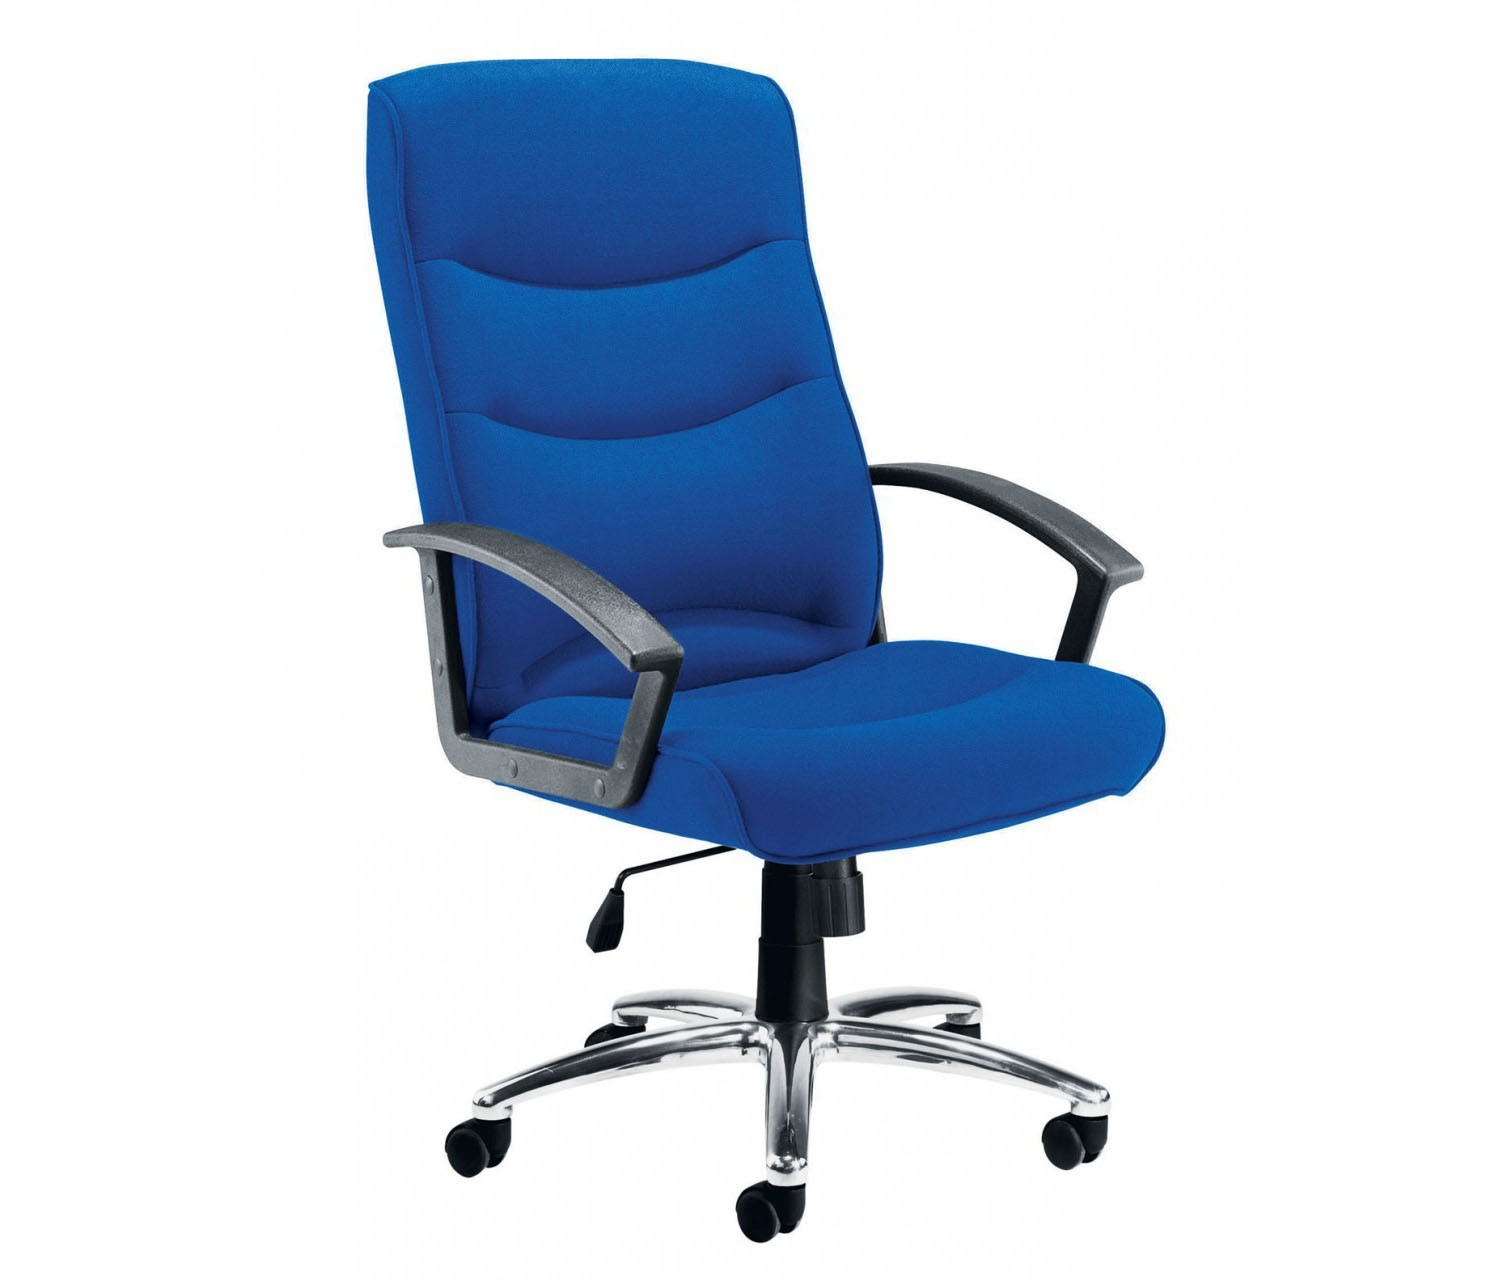 Discount Desks And Chairs Discount Office Furniture Buy